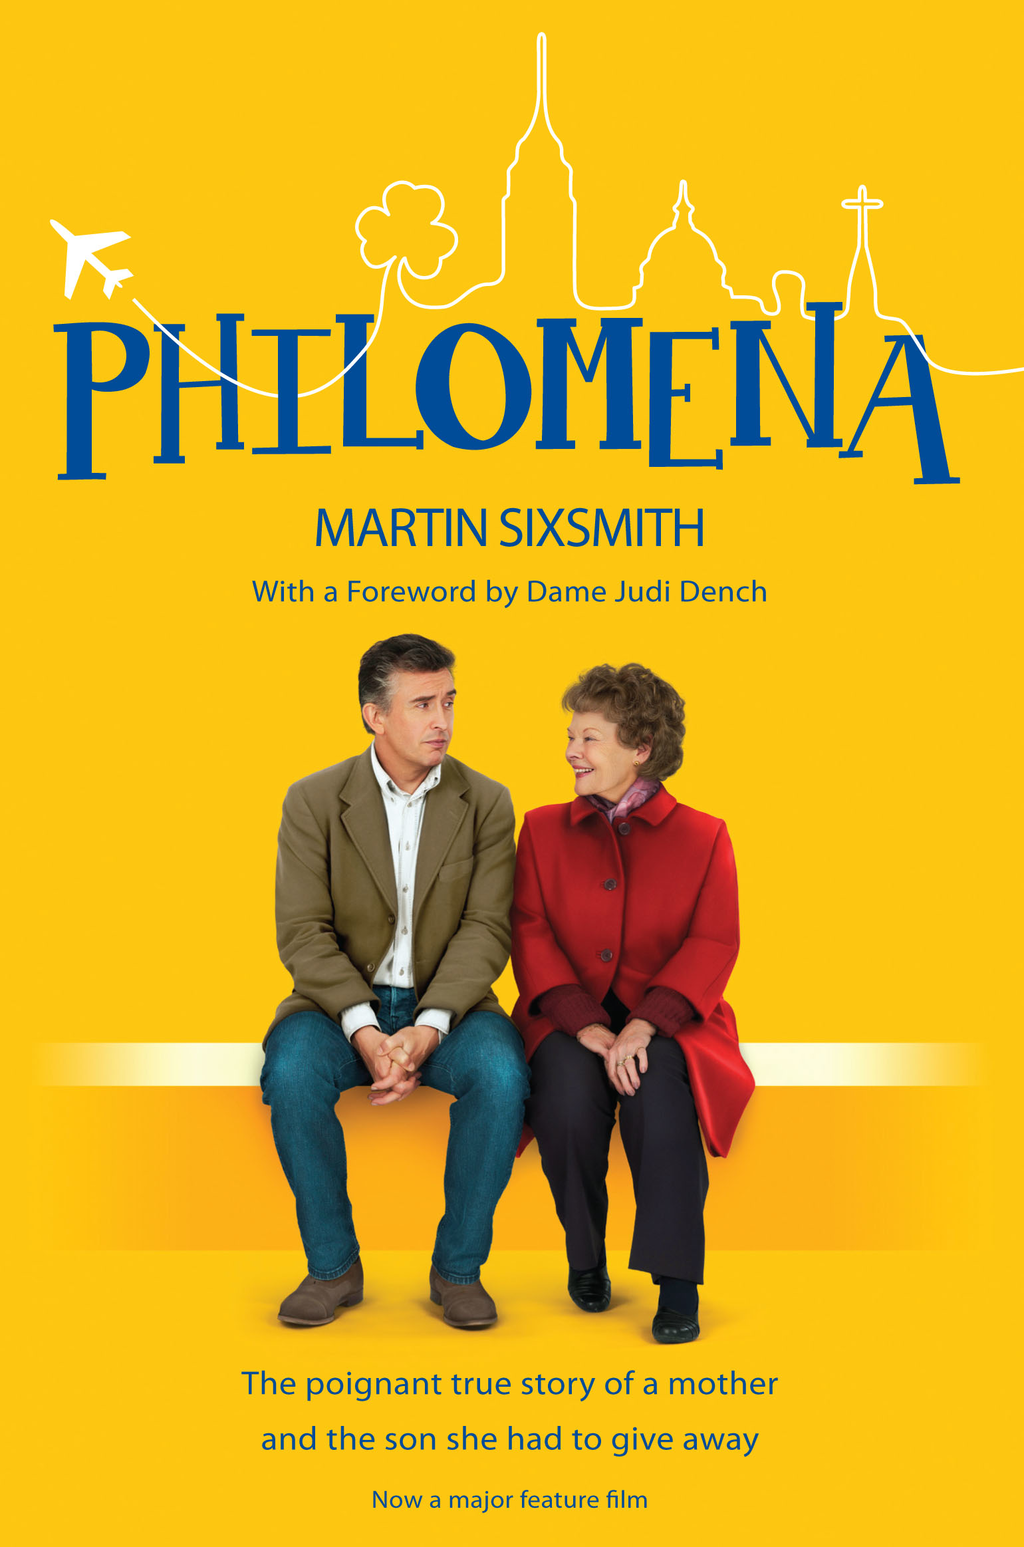 Philomena The true story of a mother and the son she had to give away (film tie-in edition)